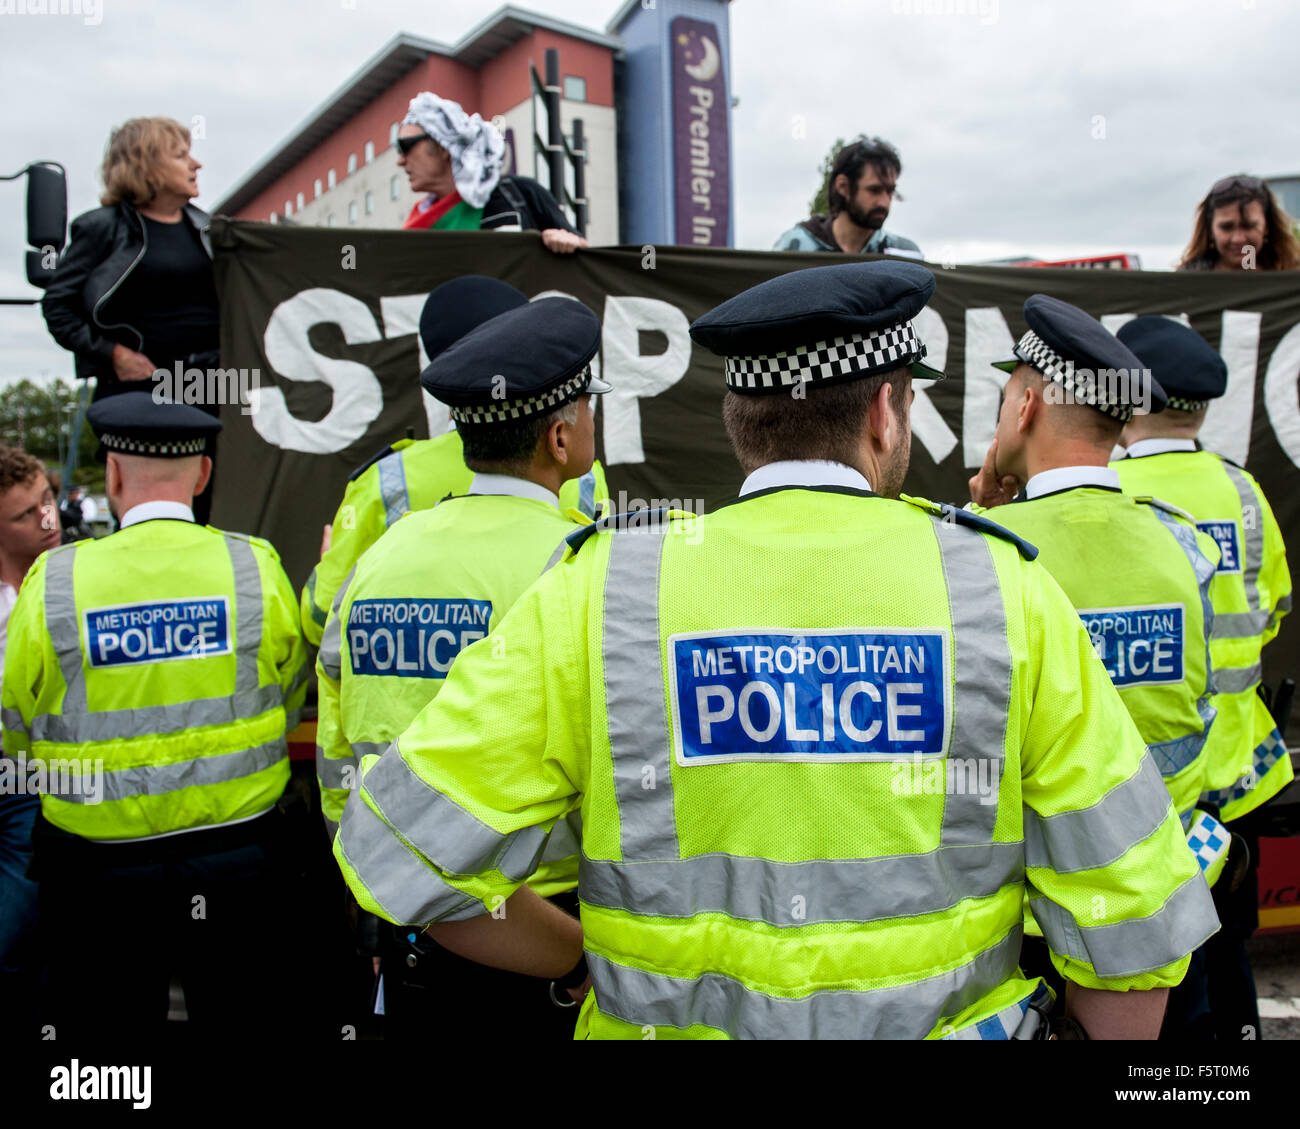 Police remove a vicar from a blockade during a protest against the DSEI, one of the world's largest arms fairs. Stock Photo